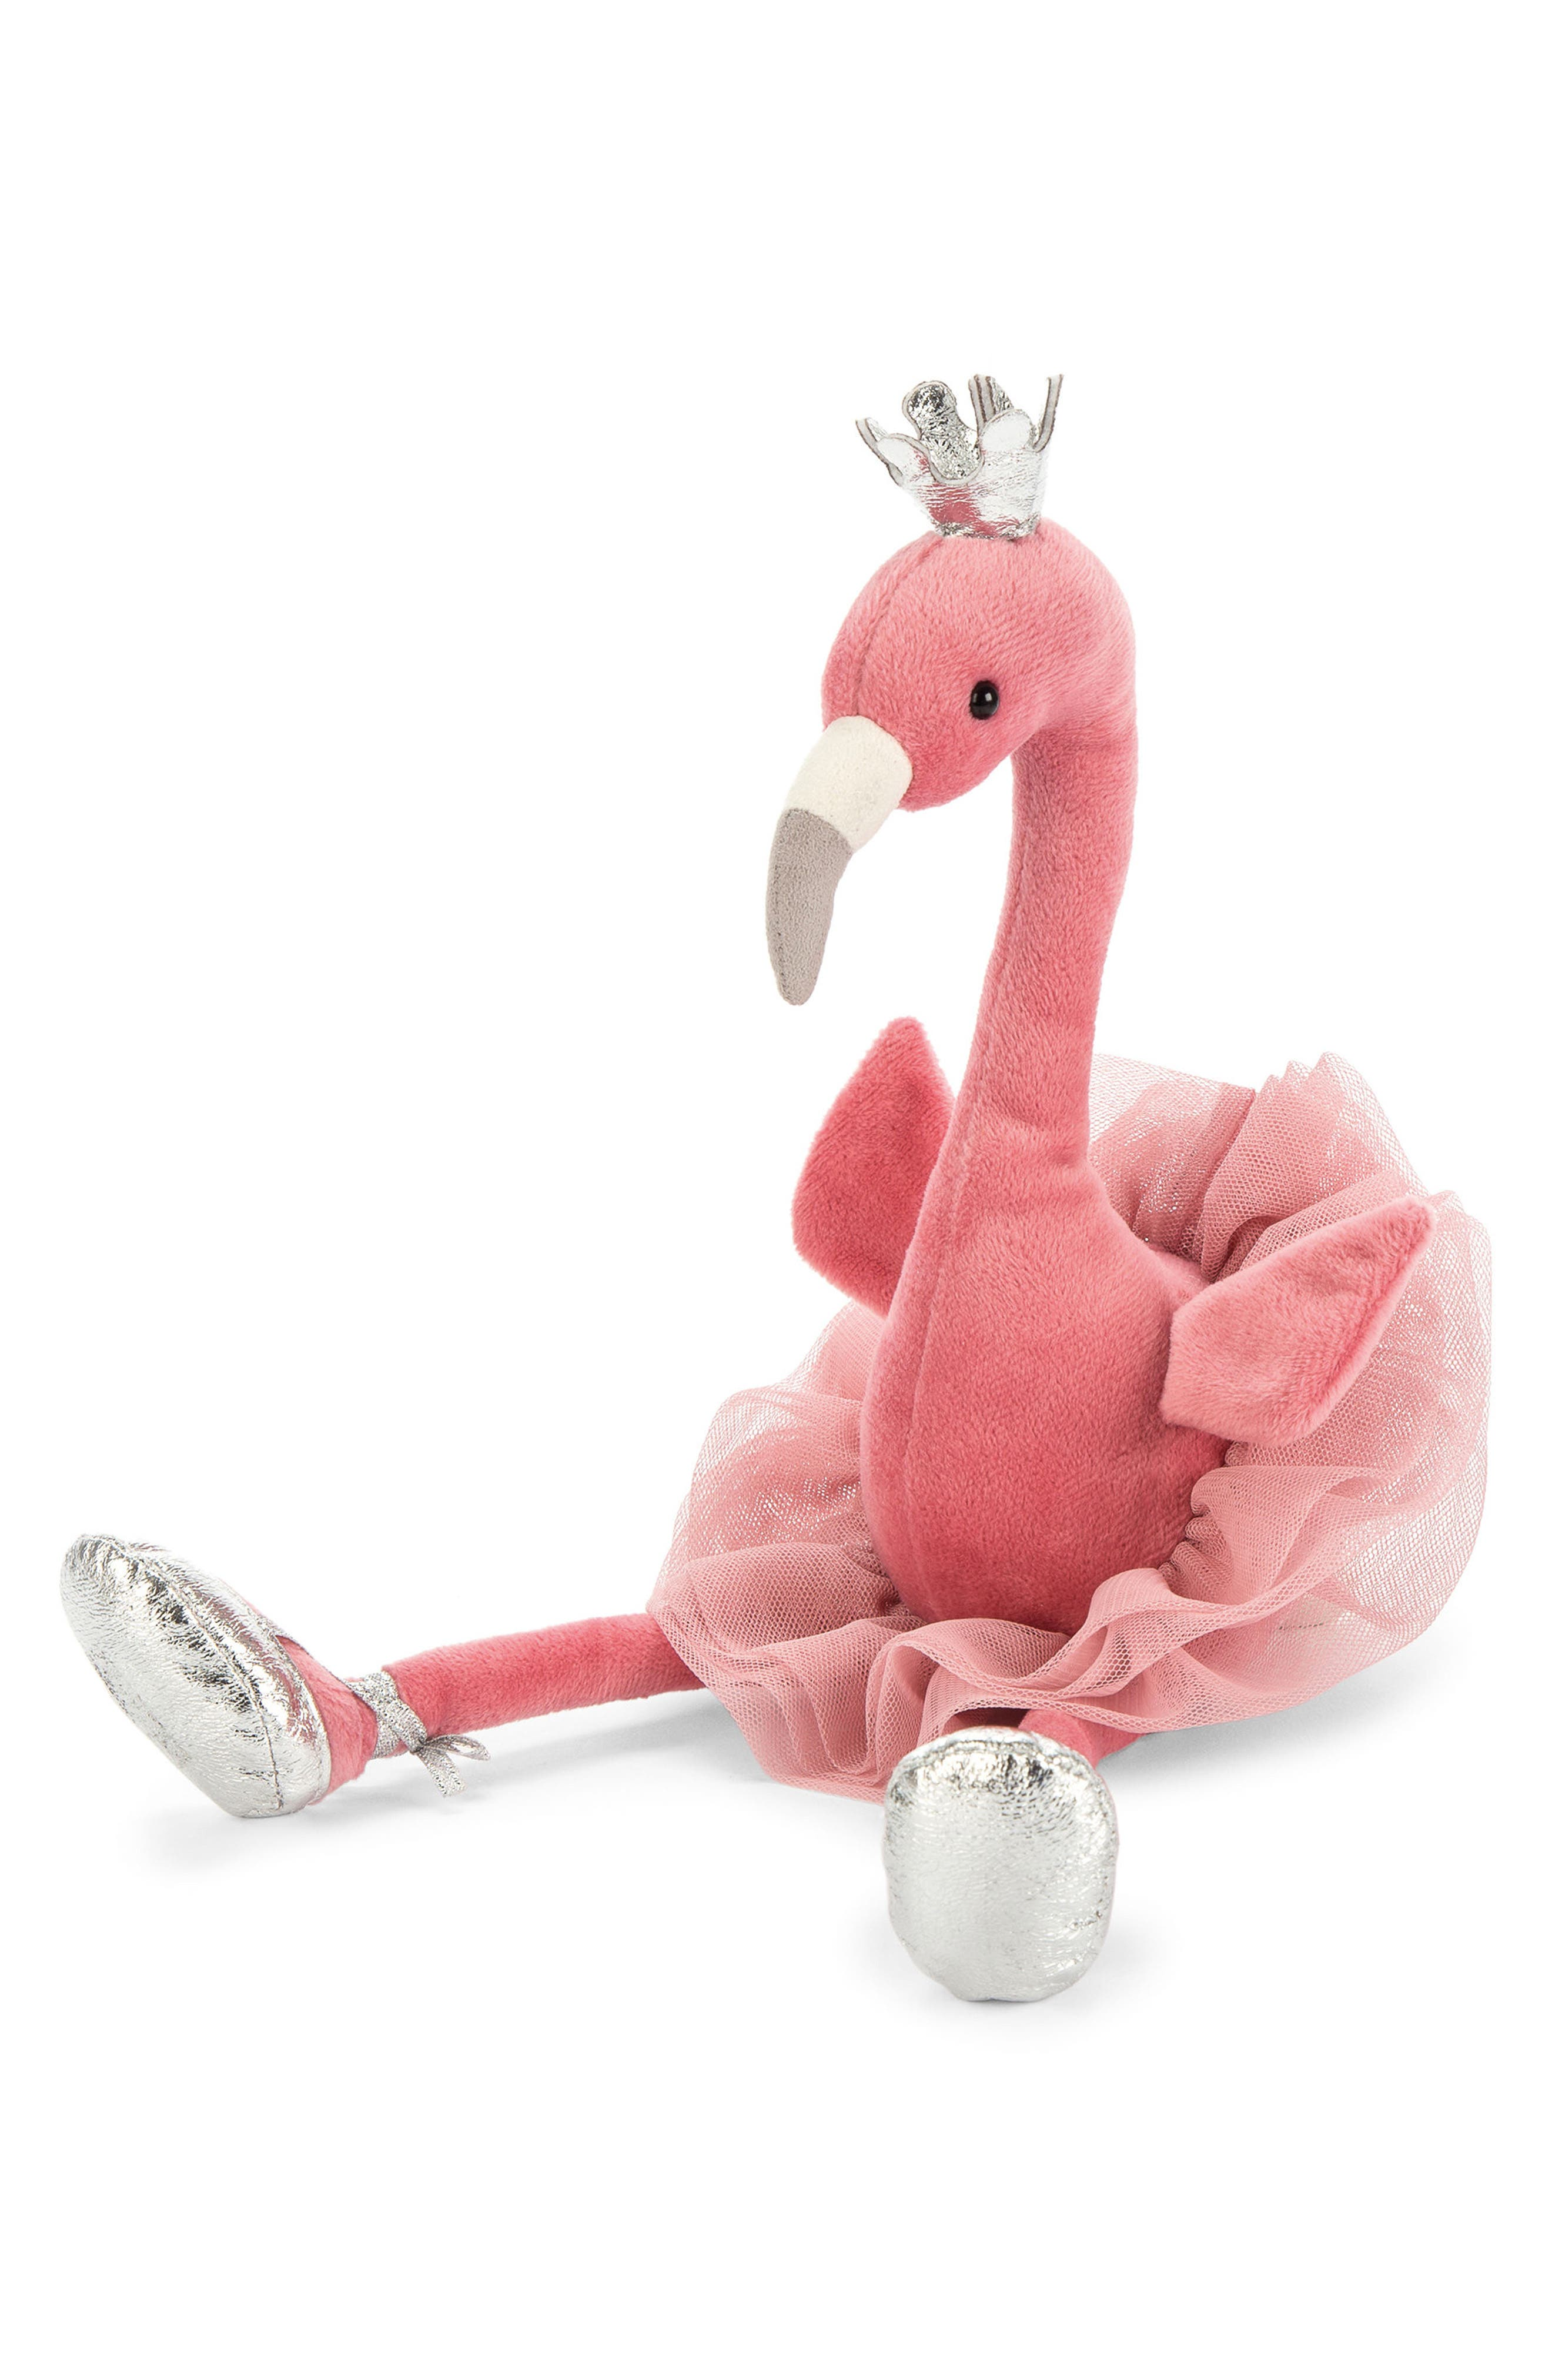 Fancy Flamingo Stuffed Animal,                             Main thumbnail 1, color,                             Pink